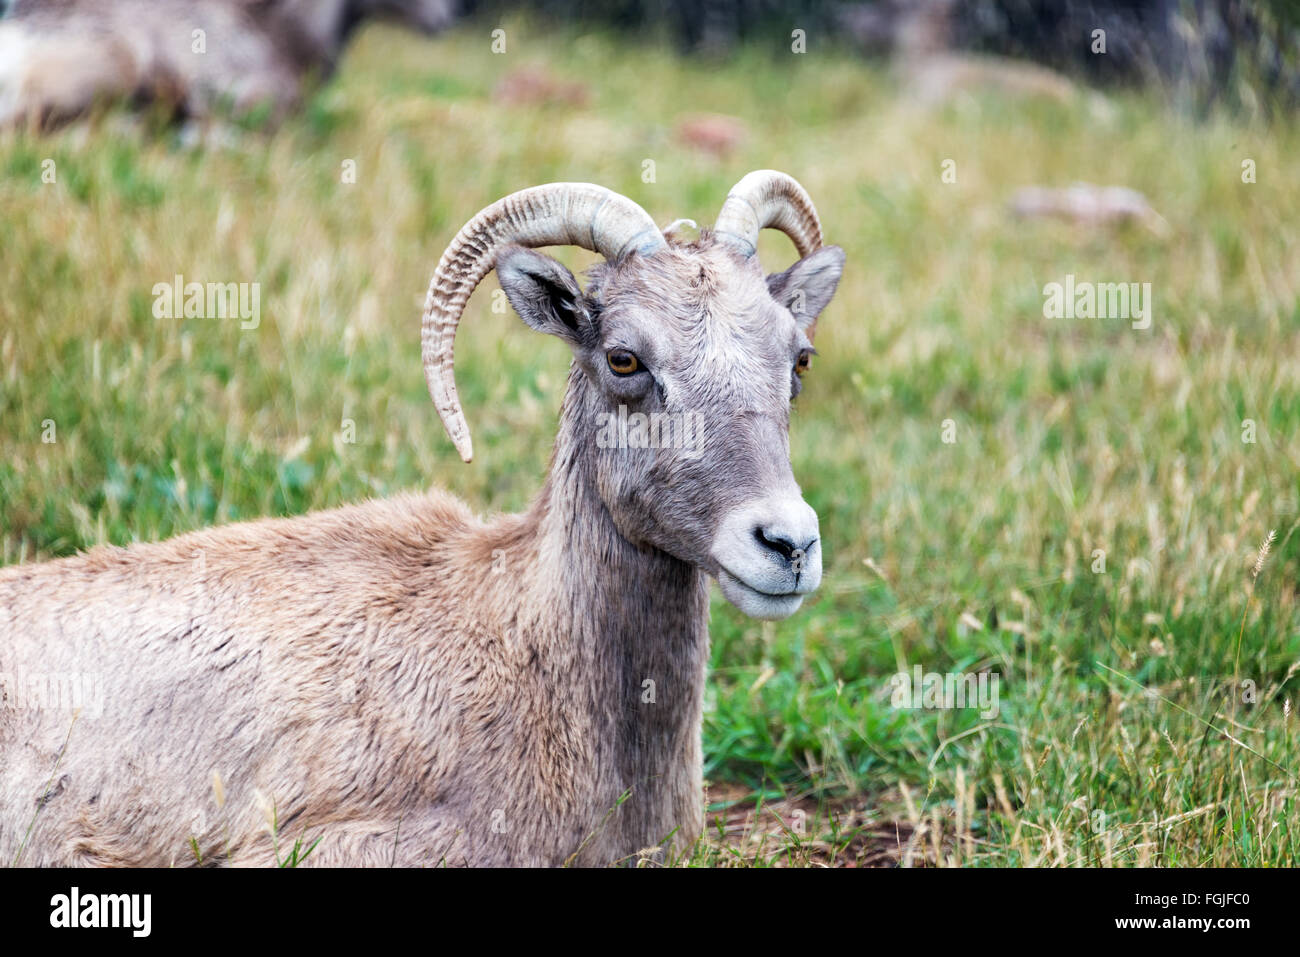 Closeup view of a female Bighorn Sheep, known as an Ewe - Stock Image